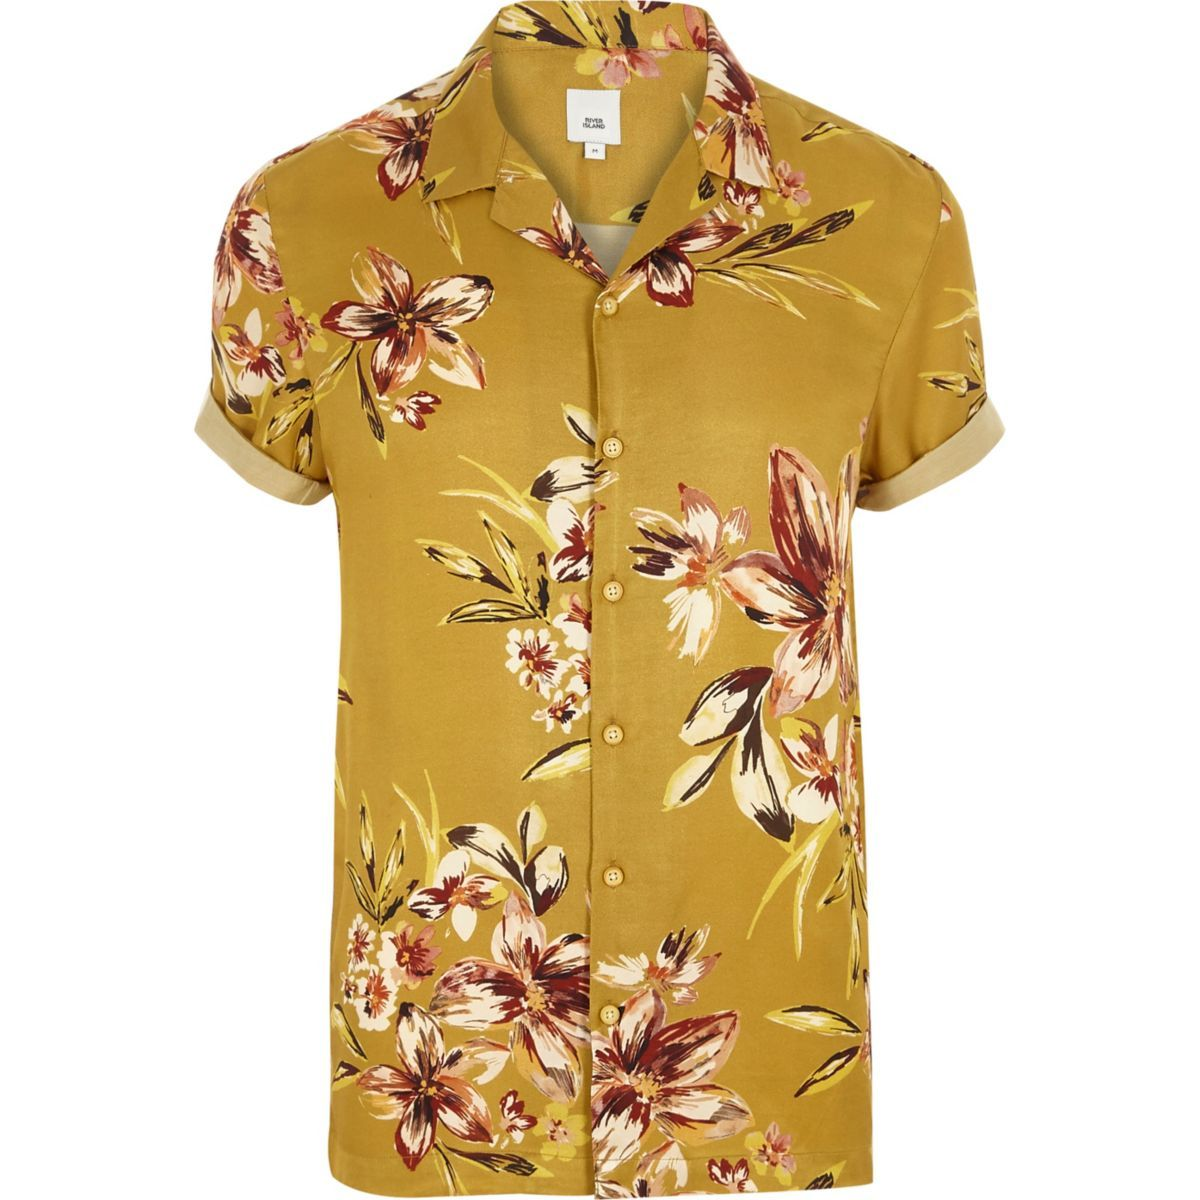 551bcd5d3e6 Mustard yellow floral short sleeve shirt - Short Sleeve Shirts ...